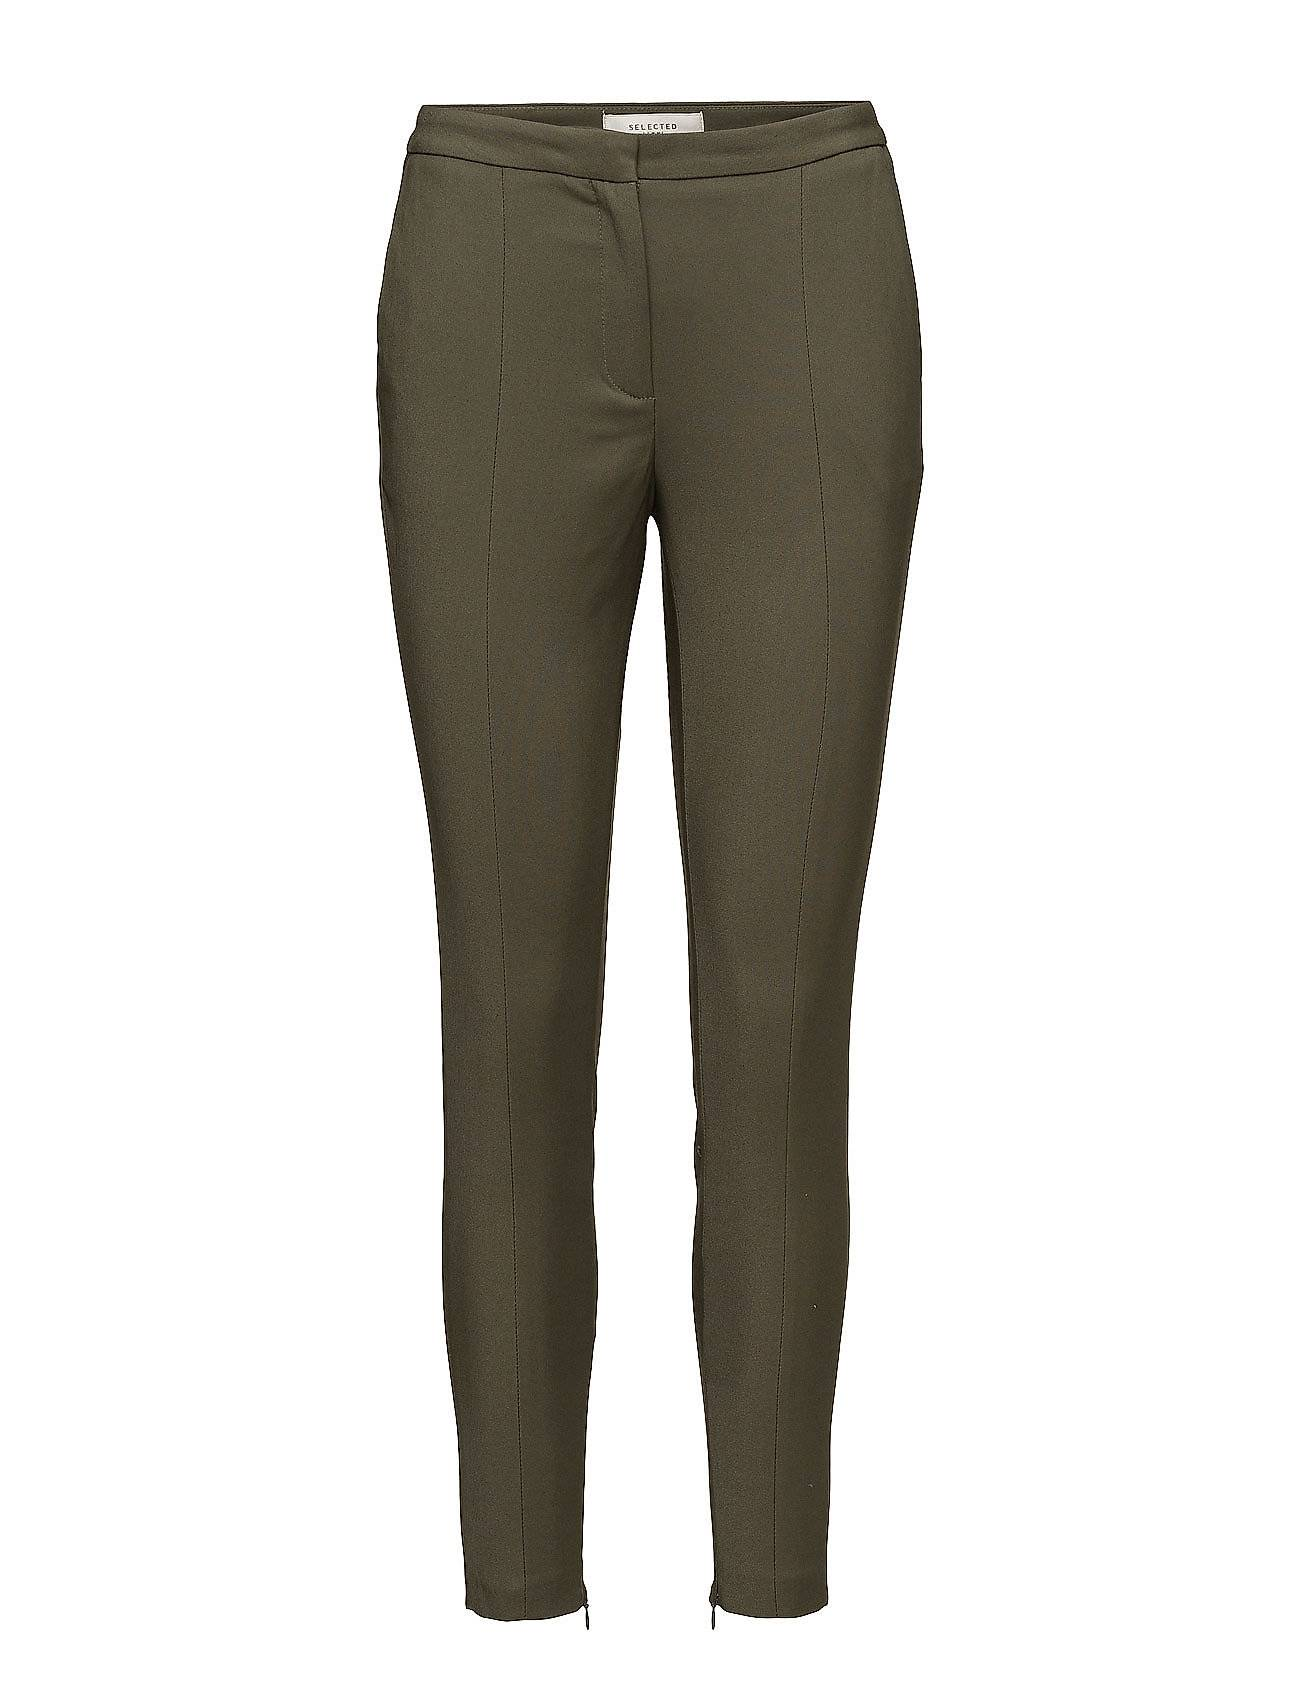 Selected Femme Sfmuse Cropped Mw Pant Noos - Grape Leaf